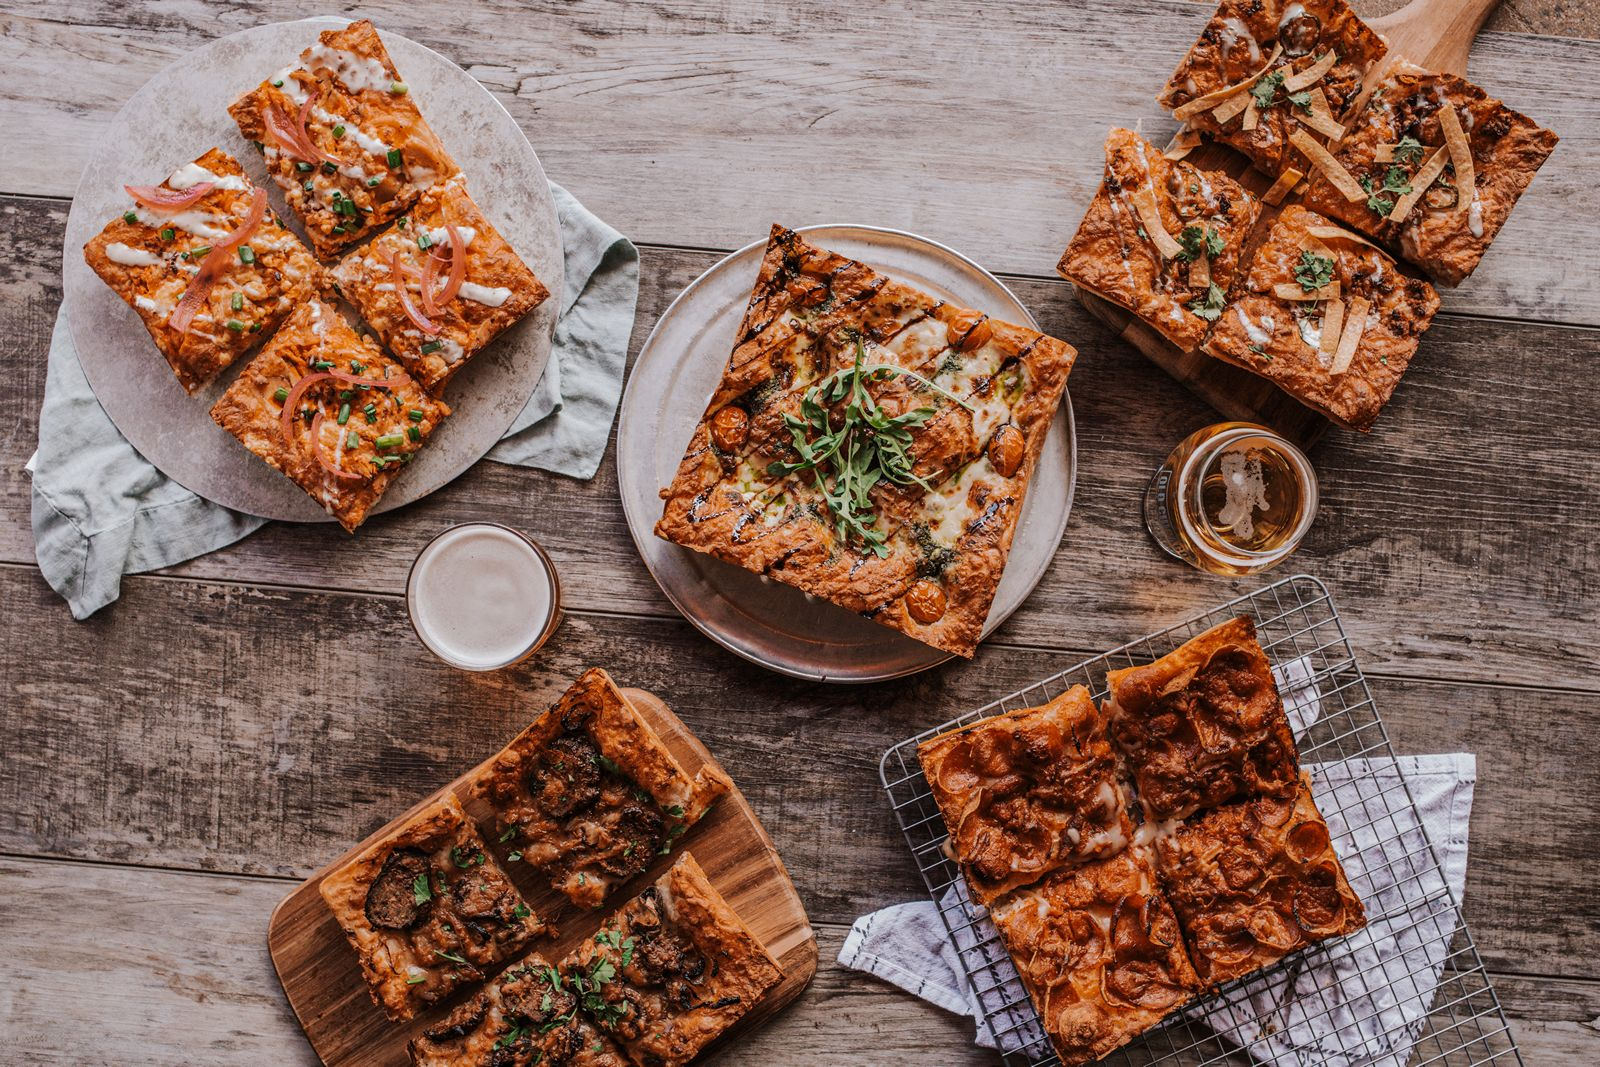 Old Chicago Pizza & Taproom Rolls Out New Detroit-Style Pizza